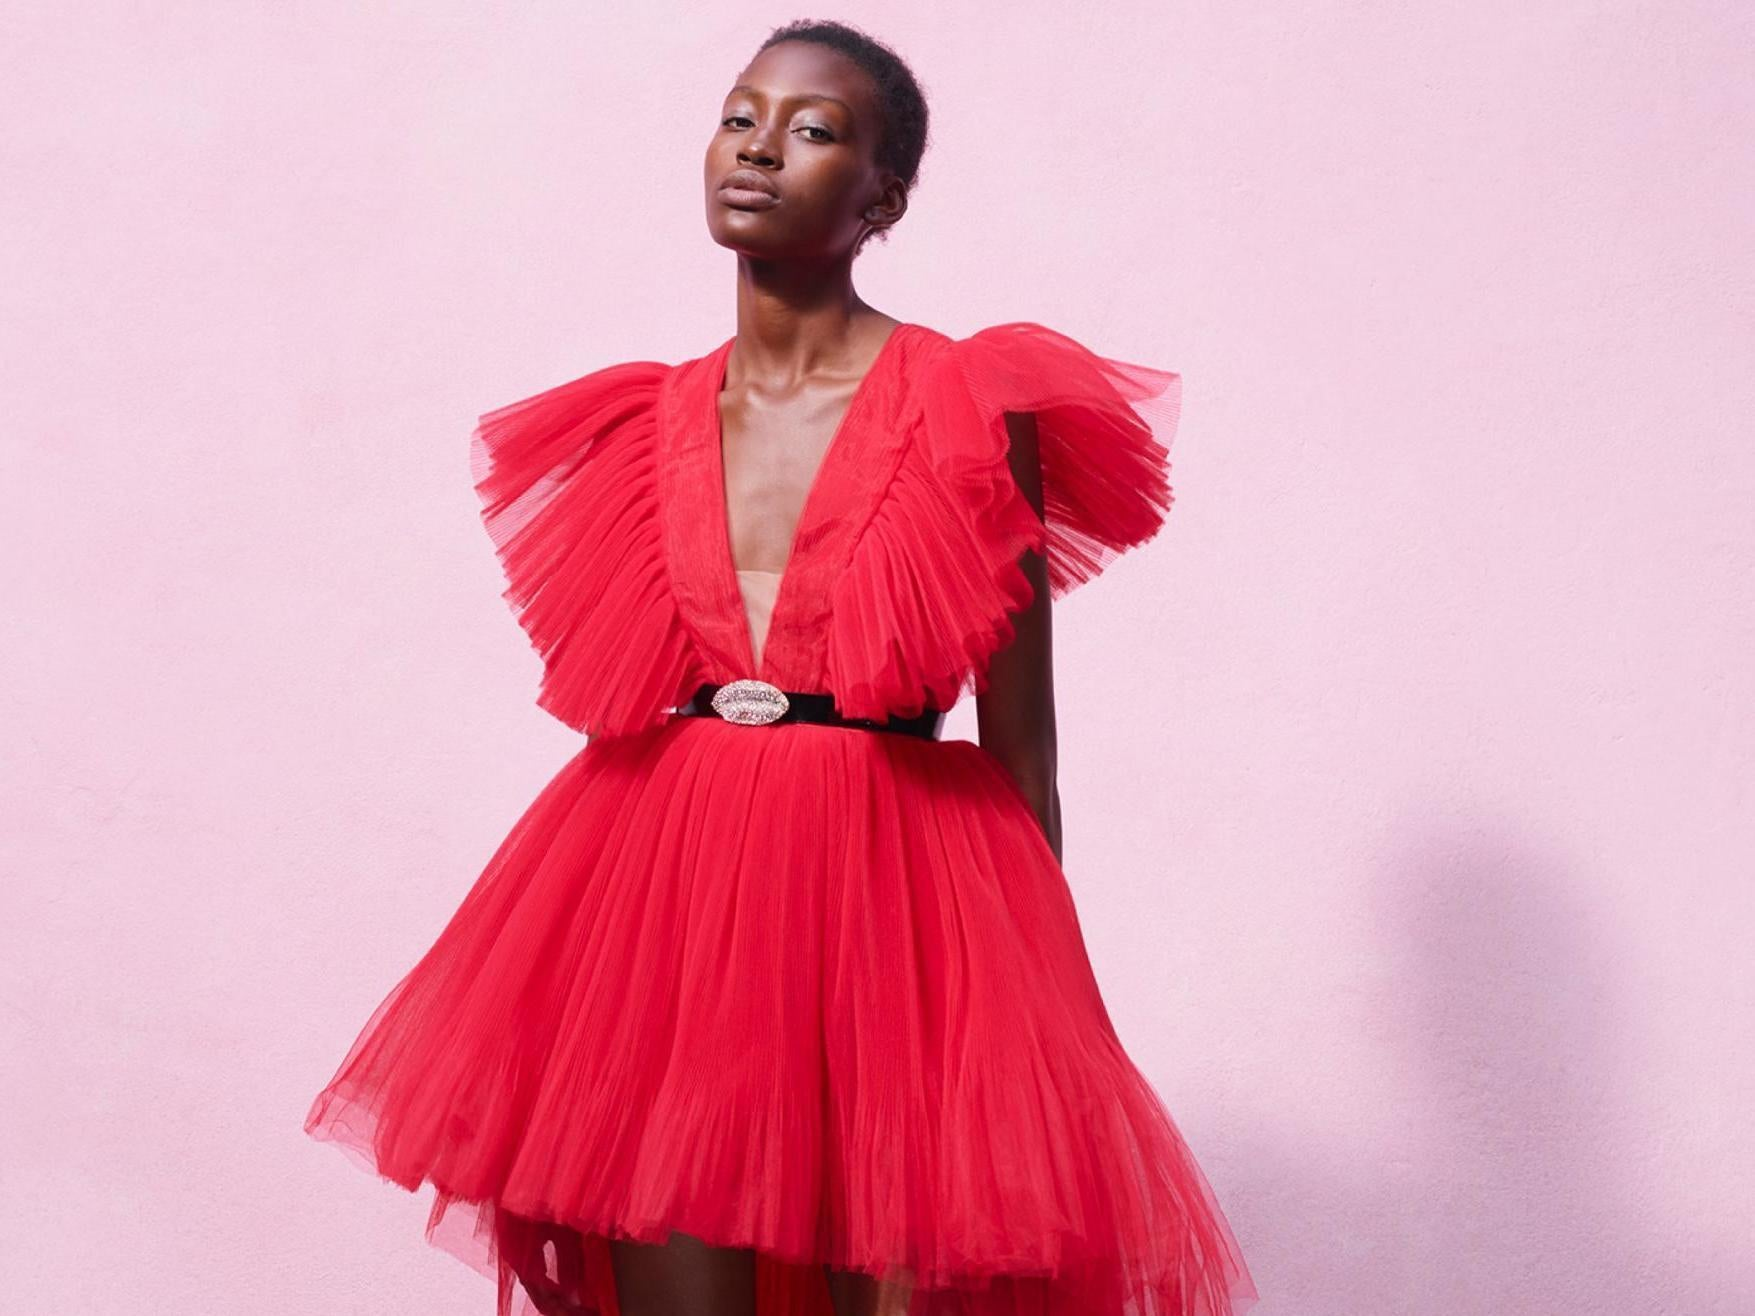 Every piece from H&M's new designer collaboration with Giambattista Valli